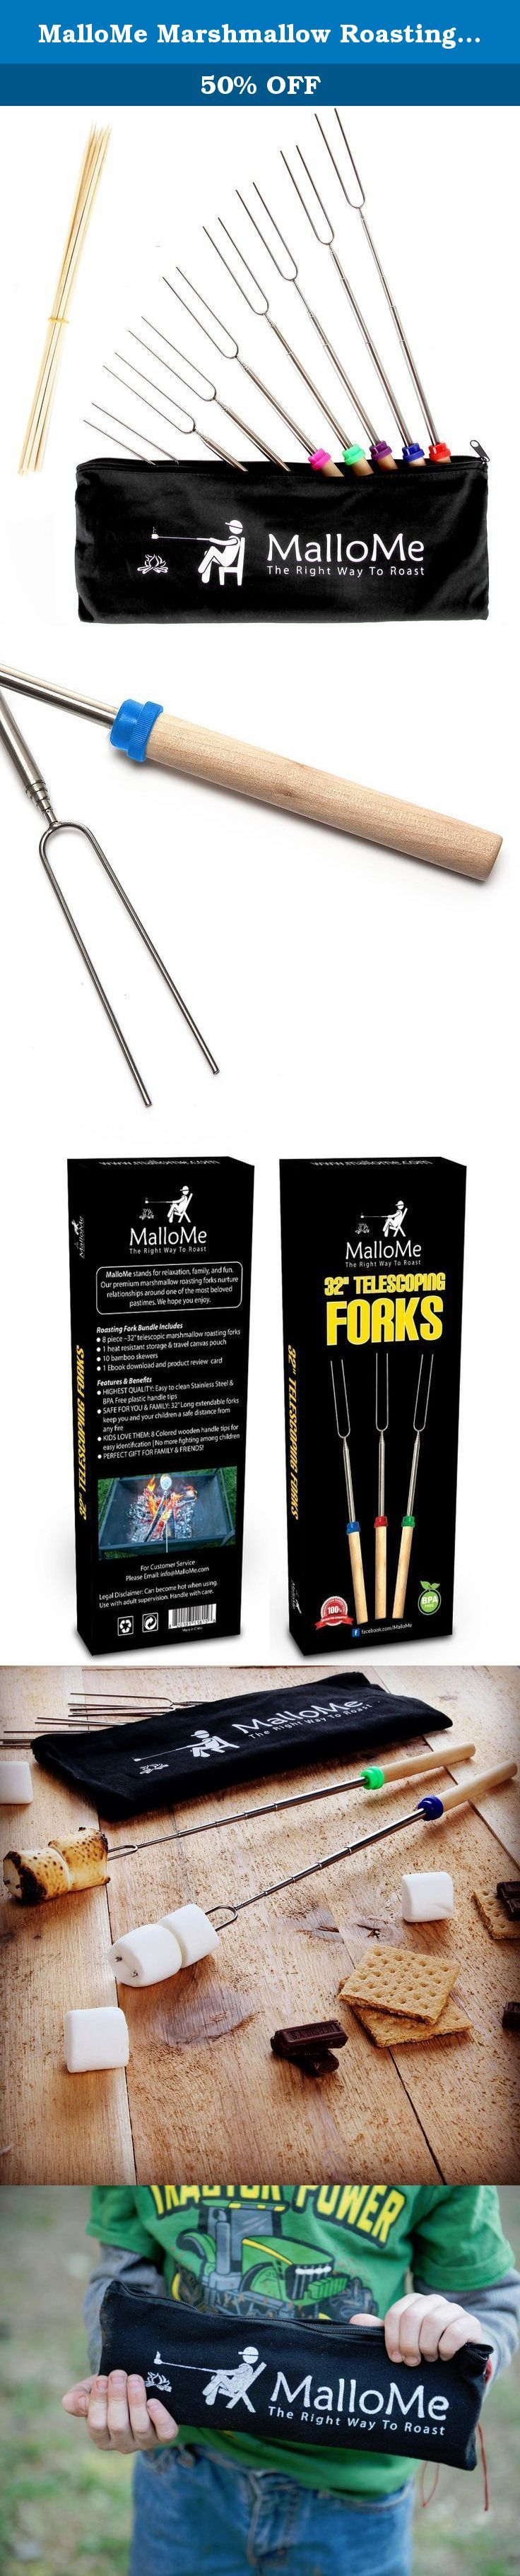 """MalloMe Marshmallow Roasting Sticks Set of 8 Telescoping Smores Skewers & Hot Dog Forks 32 Inch Patio Fire Pit Accessories Camping Cookware Campfire Cooking Kids Fireplace Accesories - FREE Canvas Pouch, 10 Bamboo Sticks & Marshmallow Sticks Ebook. THROW AWAY THOSE SHORT & CLUNKY 22 INCH ROASTING STICKS & GET YOUR FIRE PIT READY! THE BEST MARSHMALLOW ROASTING FORKS ARE FINALLY HERE MalloMe Marshmallow Roasting Sticks 